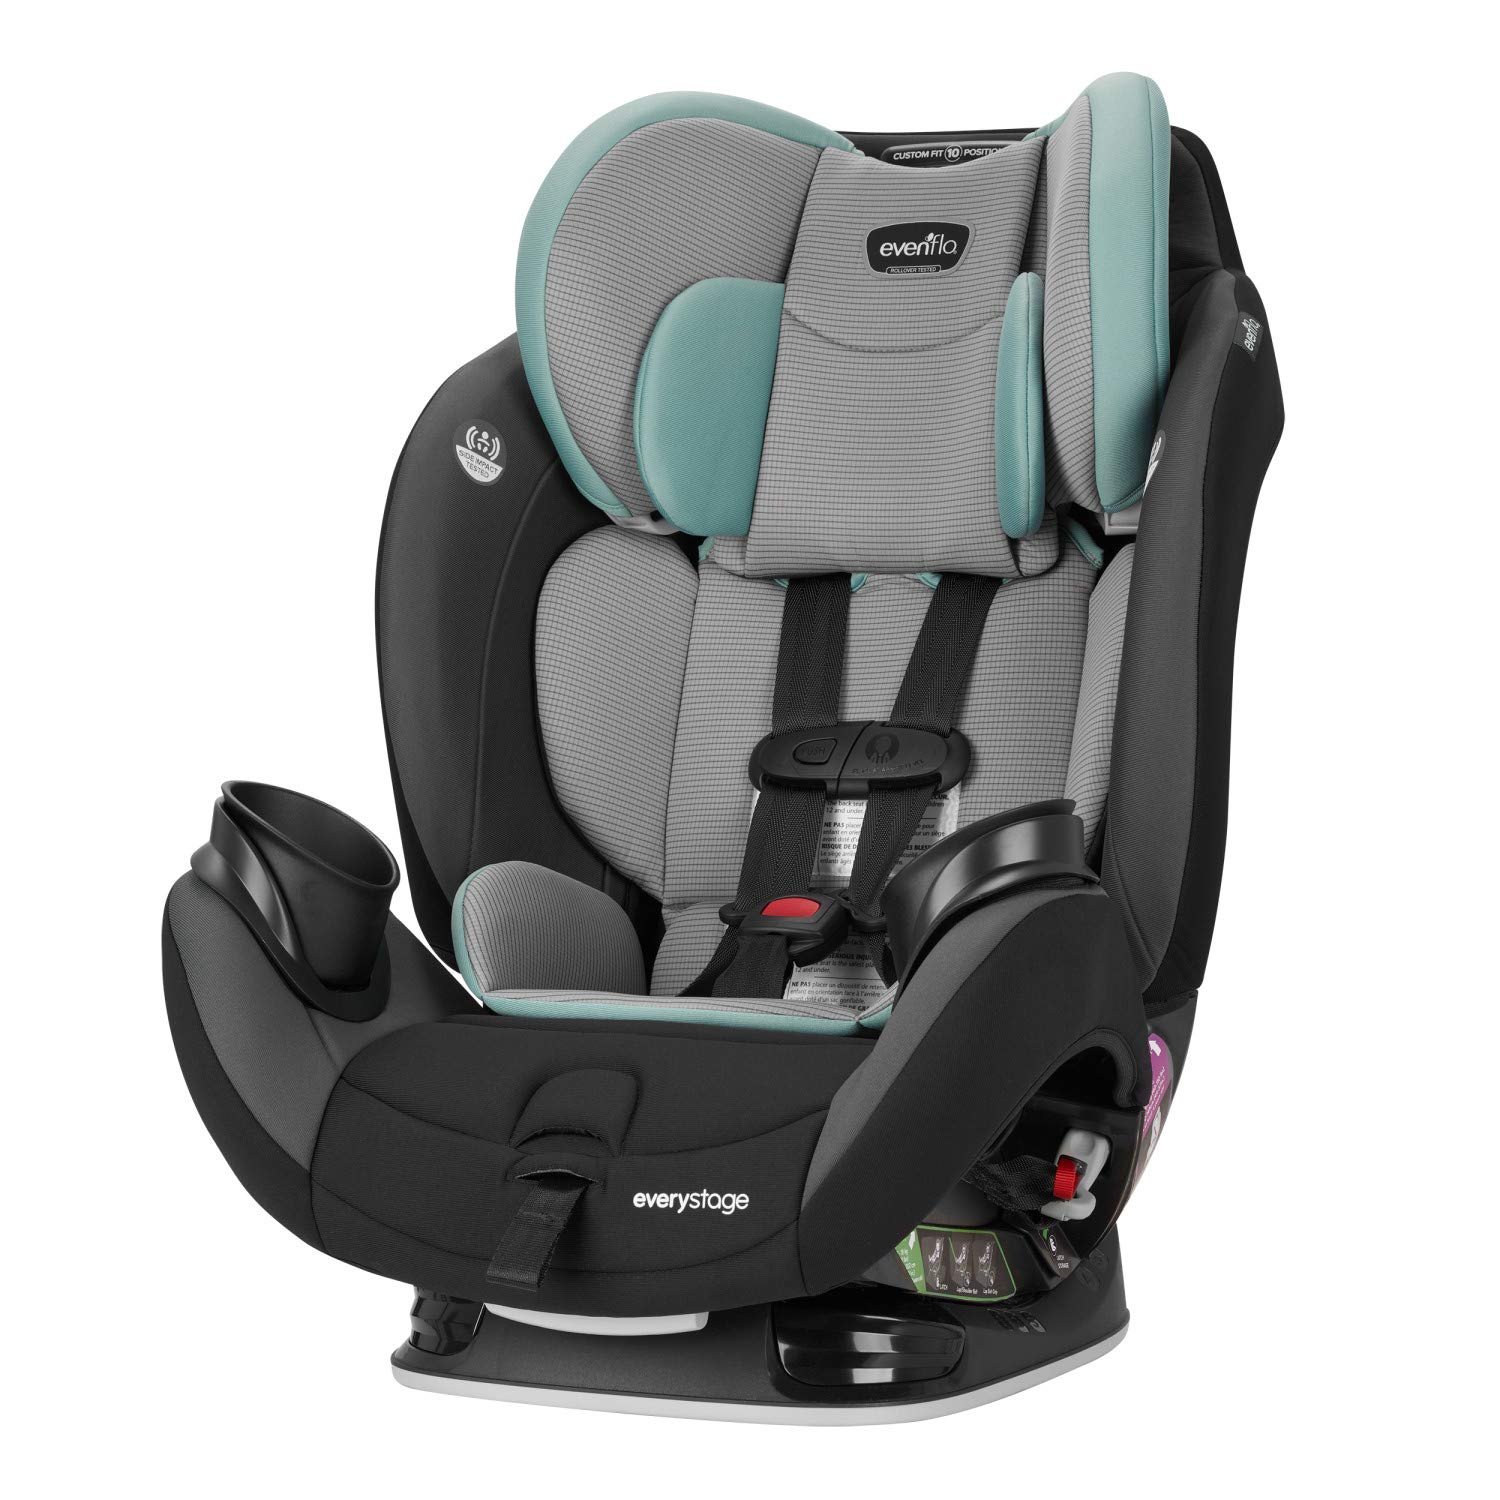 Amazon.com : Evenflo EveryStage LX All-in-One Car Seat